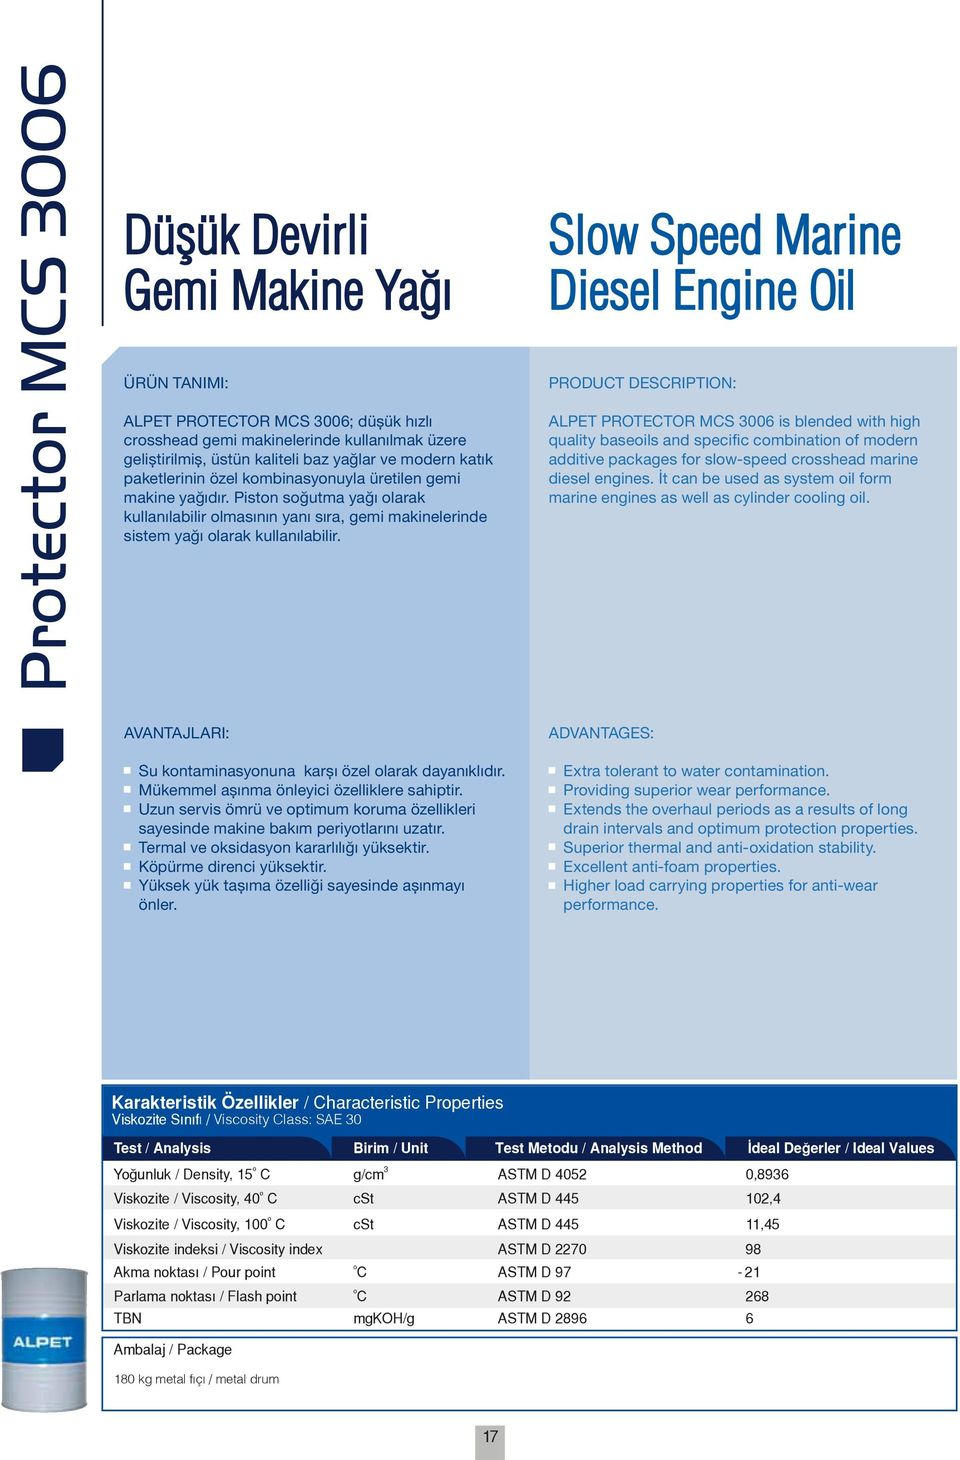 Slw Speed Marine Diesel Engine Oil PRODUCT DESCRIPTION: ALPET PROTECTOR MCS 3006 is blended with high quality baseils and specific cmbinatin f mdern additive packages fr slw-speed crsshead marine